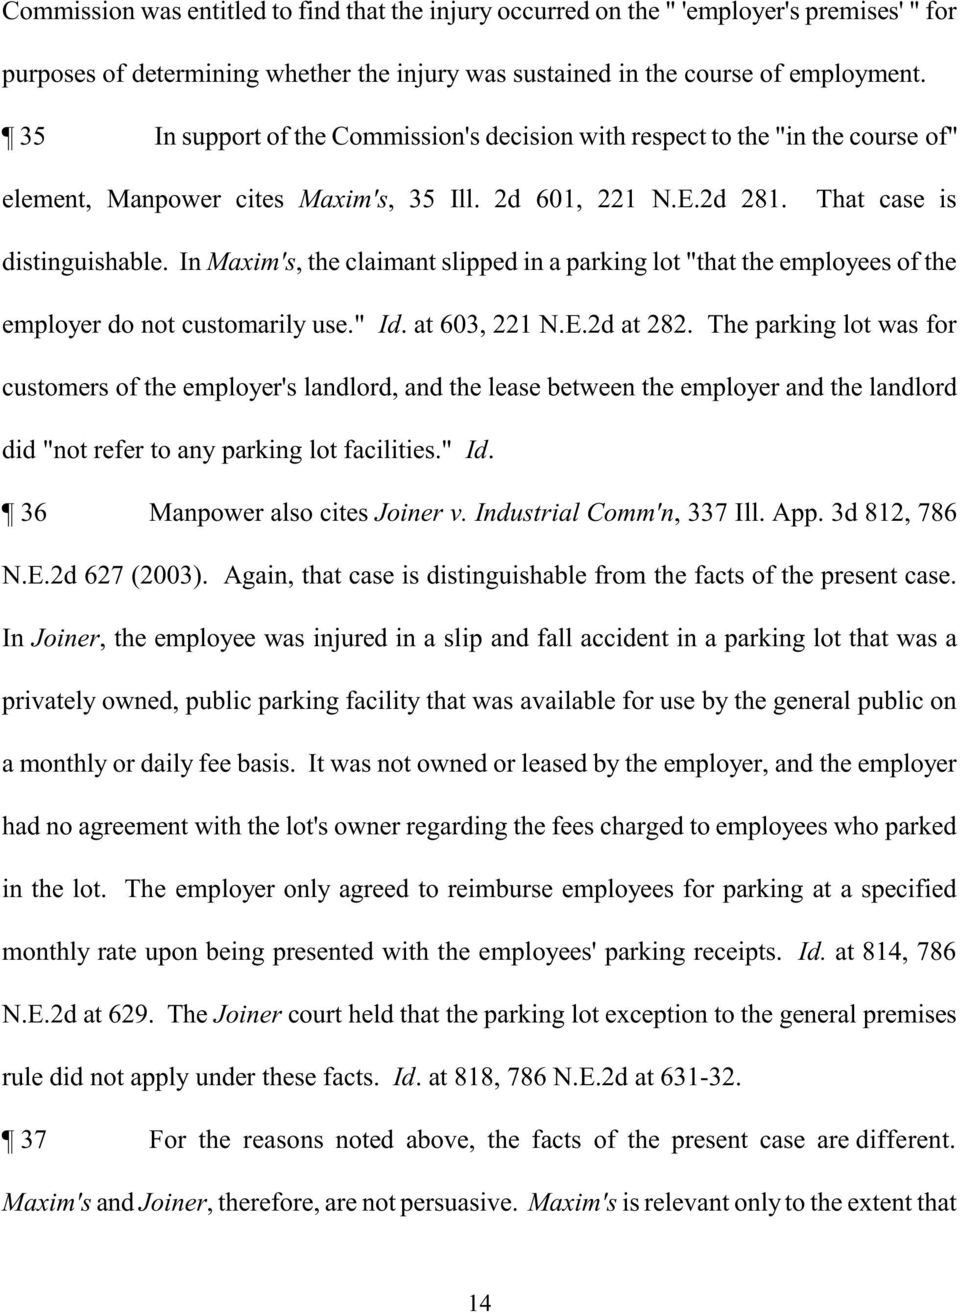 "In Maxim's, the claimant slipped in a parking lot ""that the employees of the employer do not customarily use."" Id. at 603, 221 N.E.2d at 282."